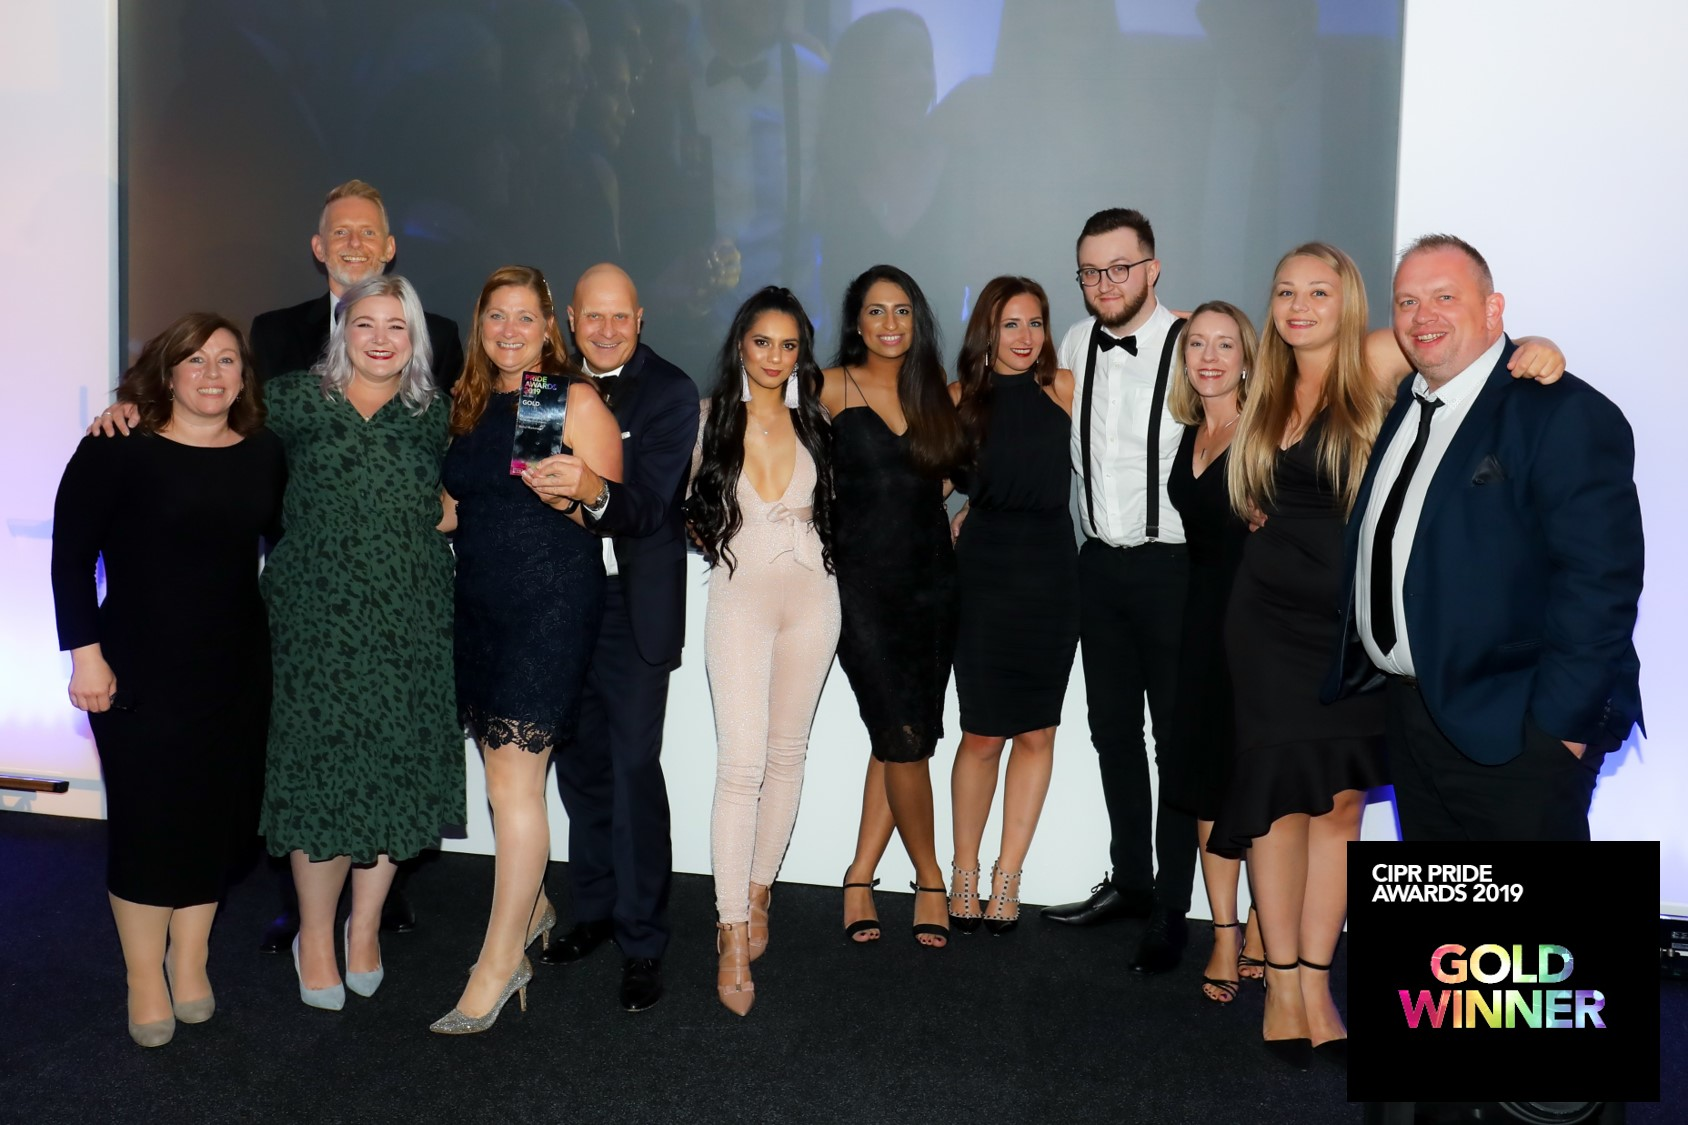 Balls2 Marketing Oustanding Small Public Relations Consultancy Win PRESS